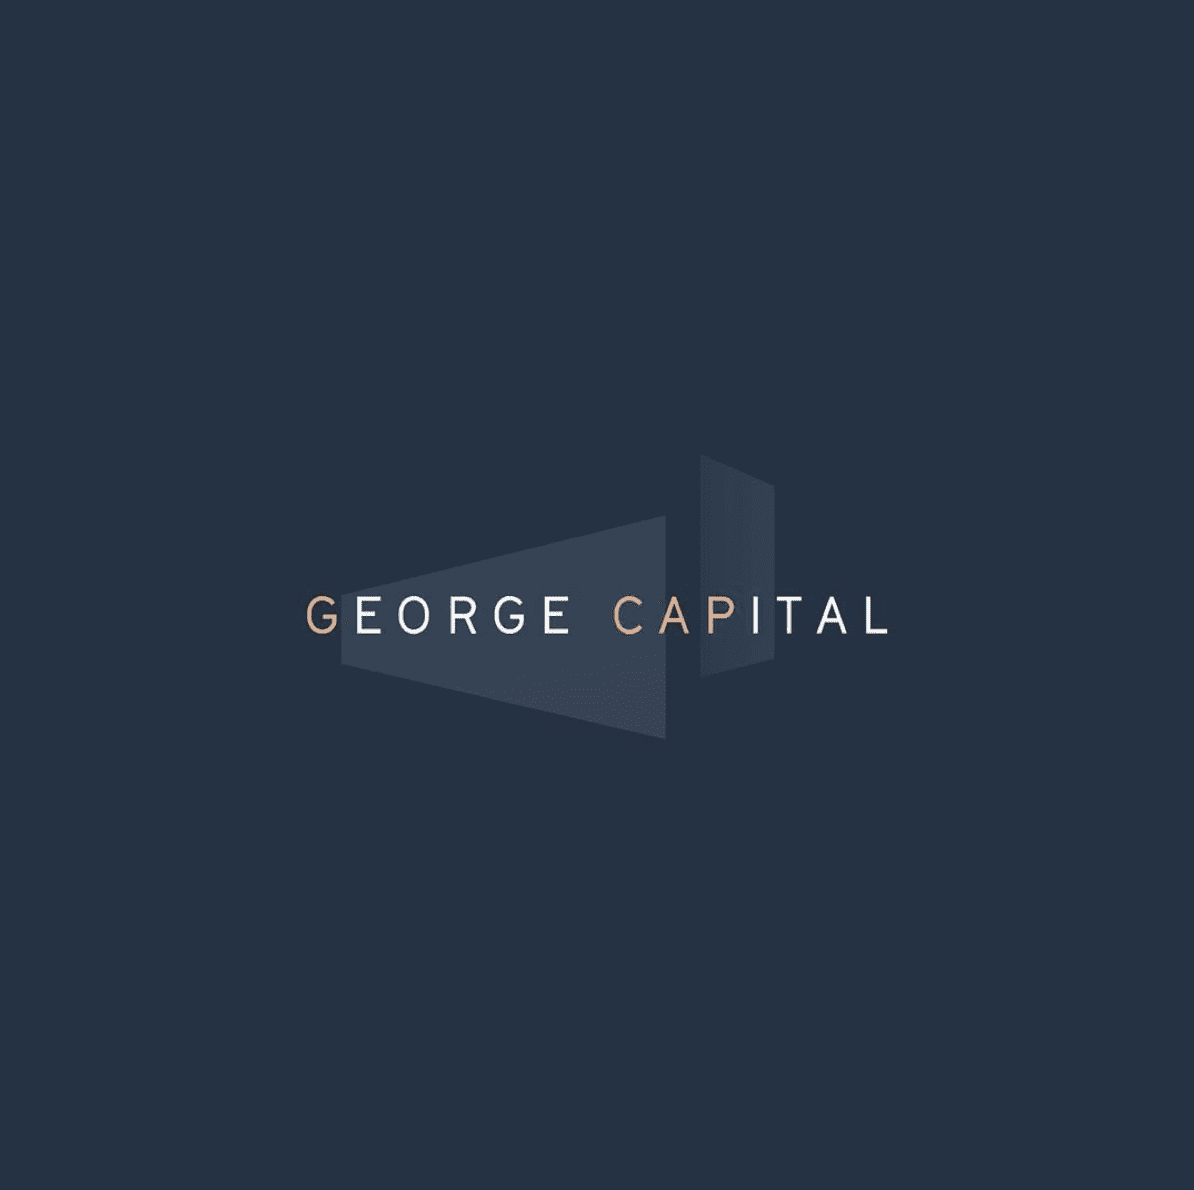 George Capital Redesign